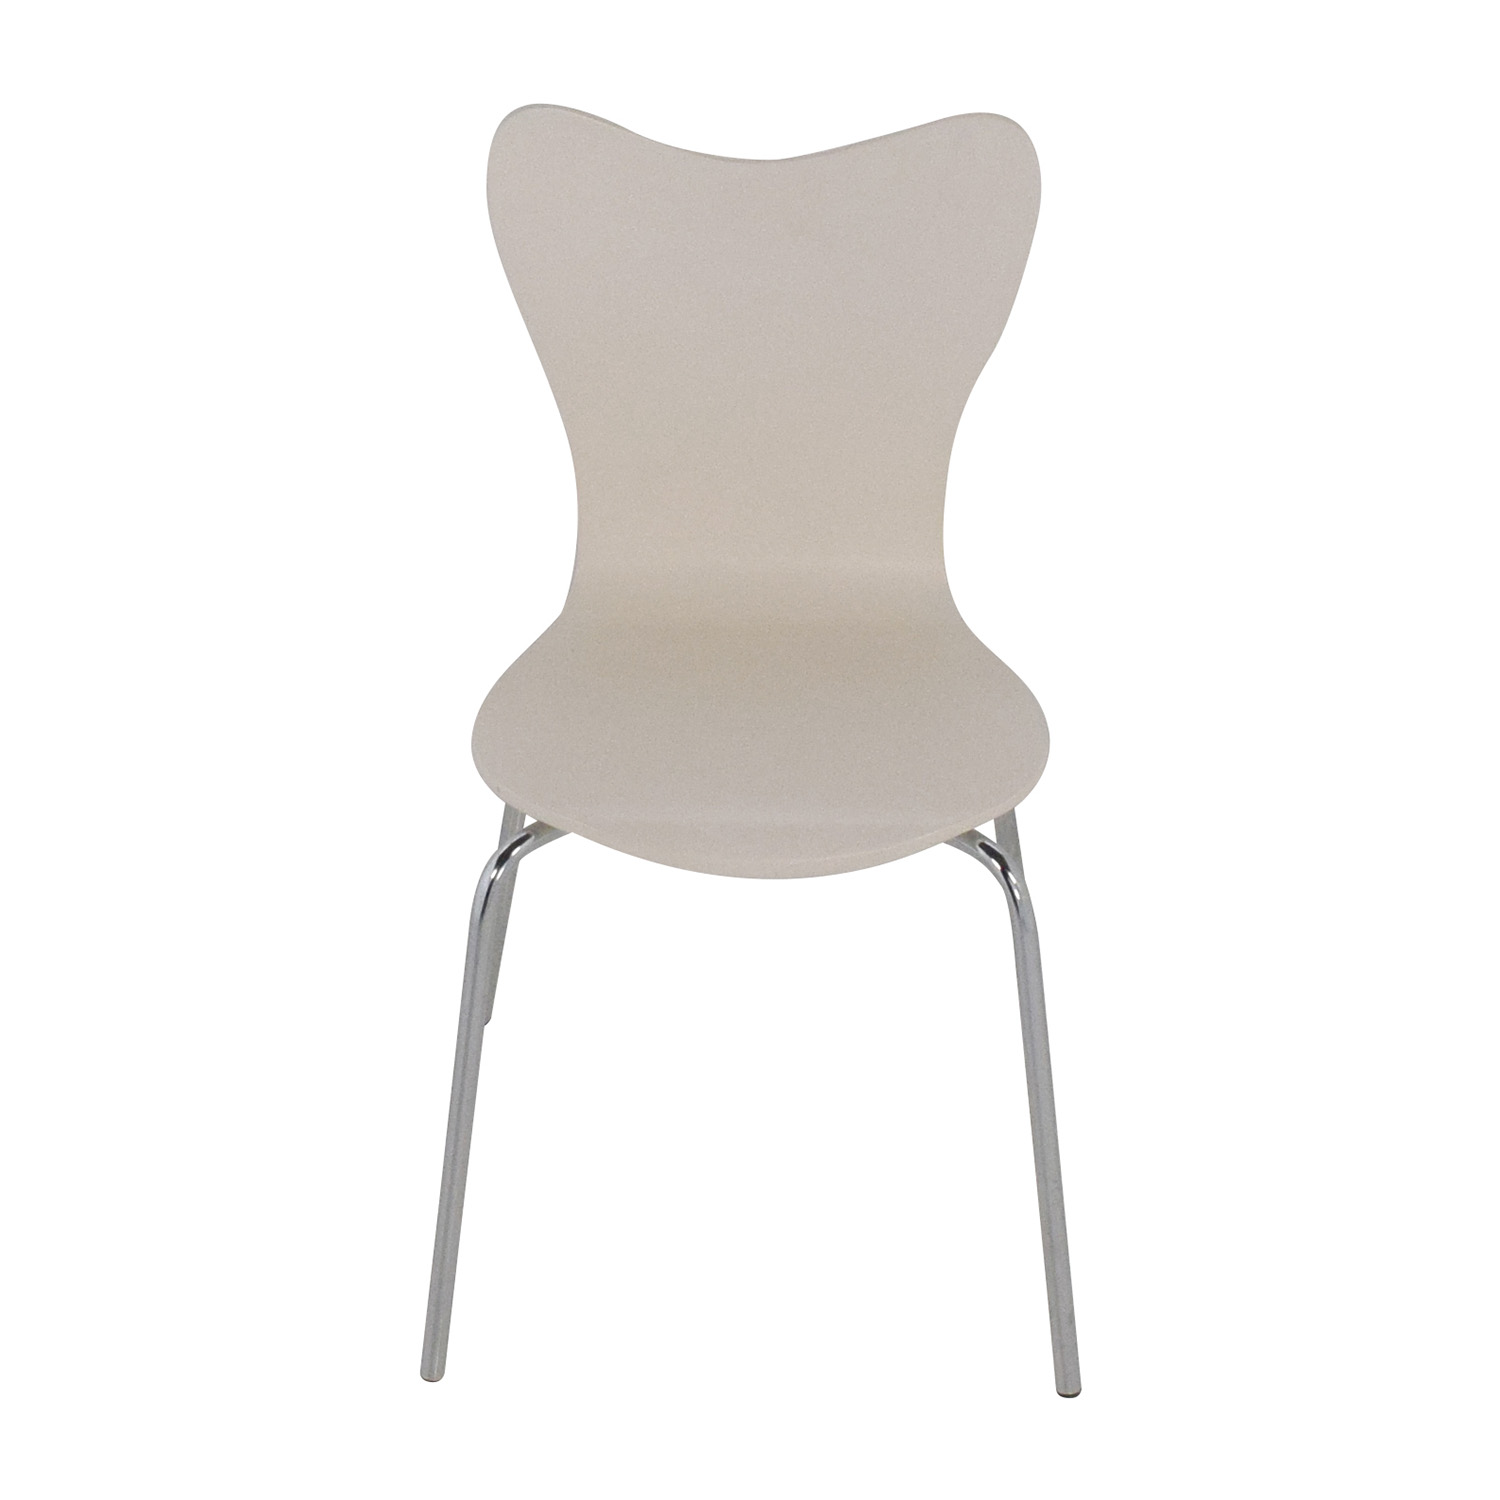 PBteen PBteen White Desk Chair for sale